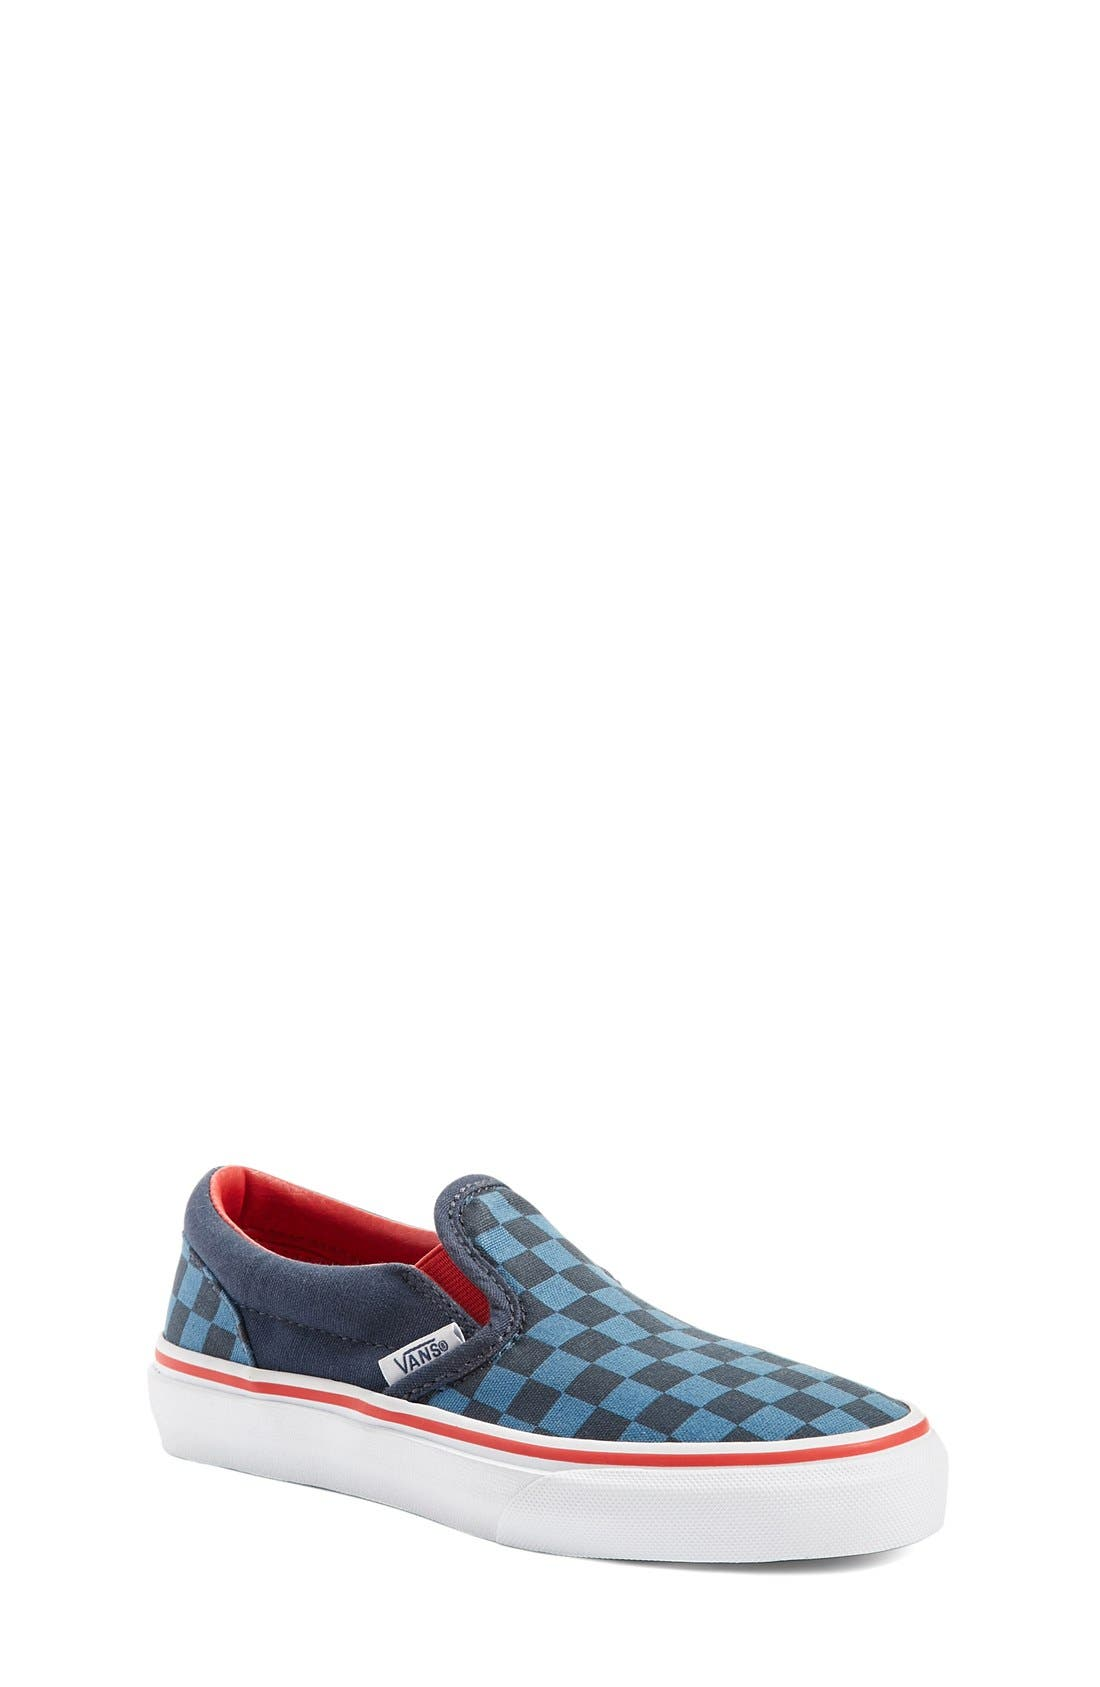 VANS 'Classic' Checkerboard Print Slip-On Sneaker